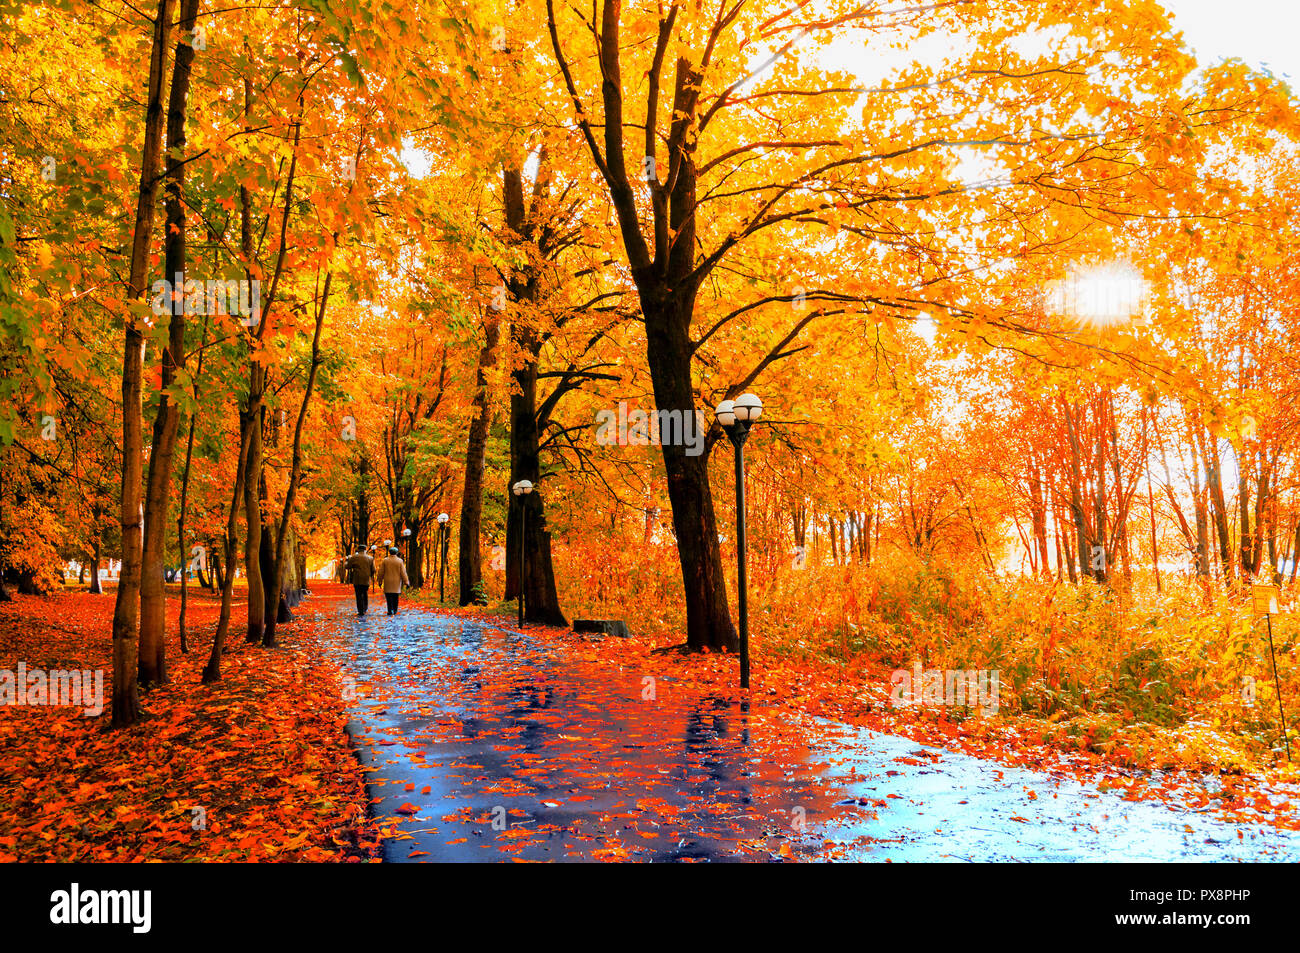 Autumn Landscape Autumn Trees With Yellow Foliage And Autumn Leaves On The Wet Asphalt Road In Park Autumn Alley After Rain Stock Photo Alamy